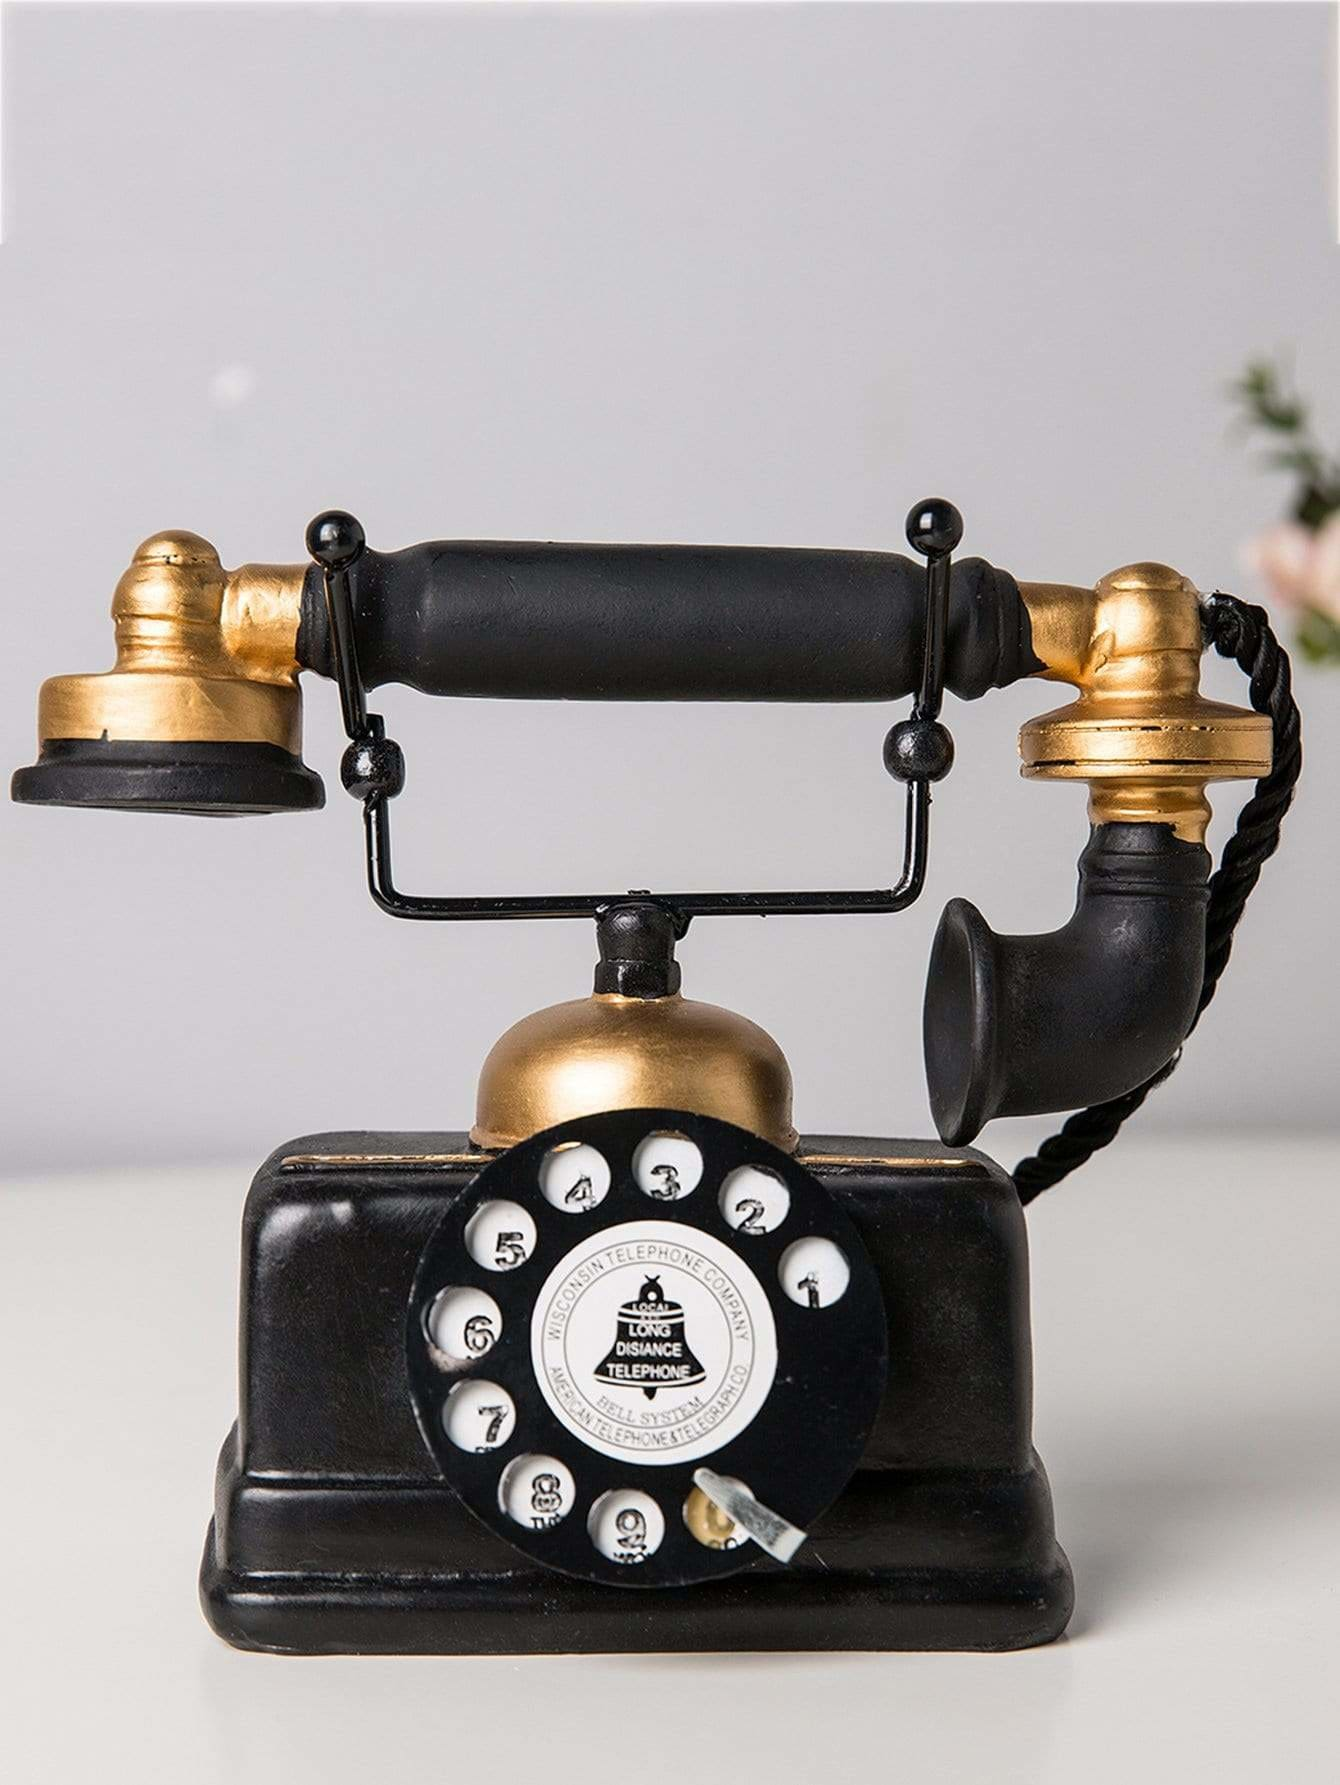 Old Telephone Decorative Object